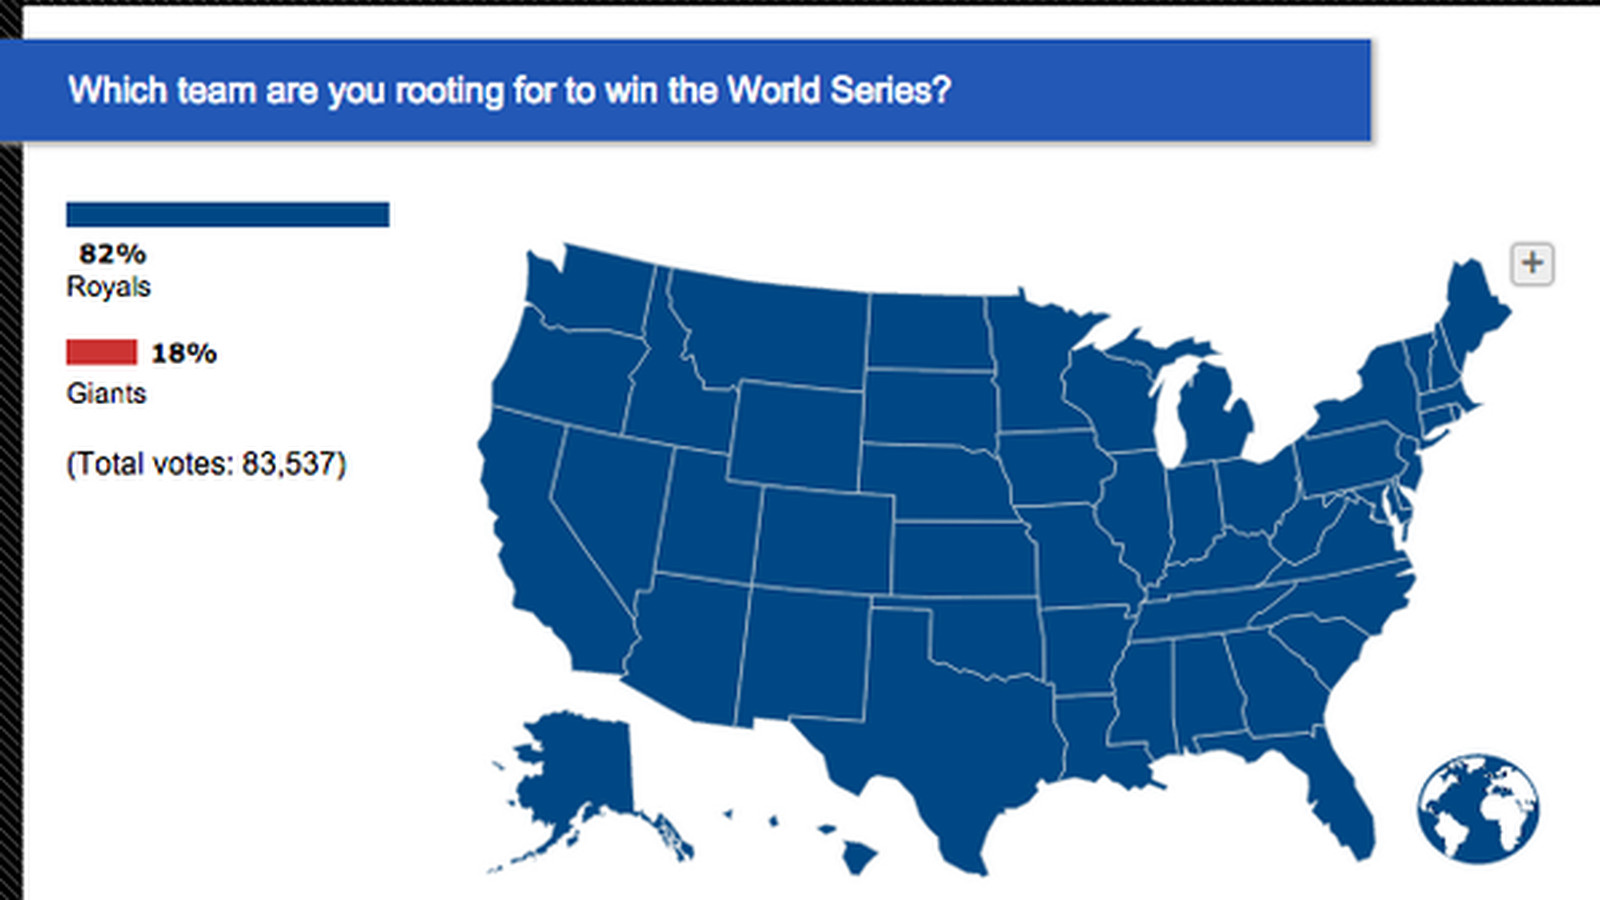 Almost Everybody Wants The Royals To Win The World Series